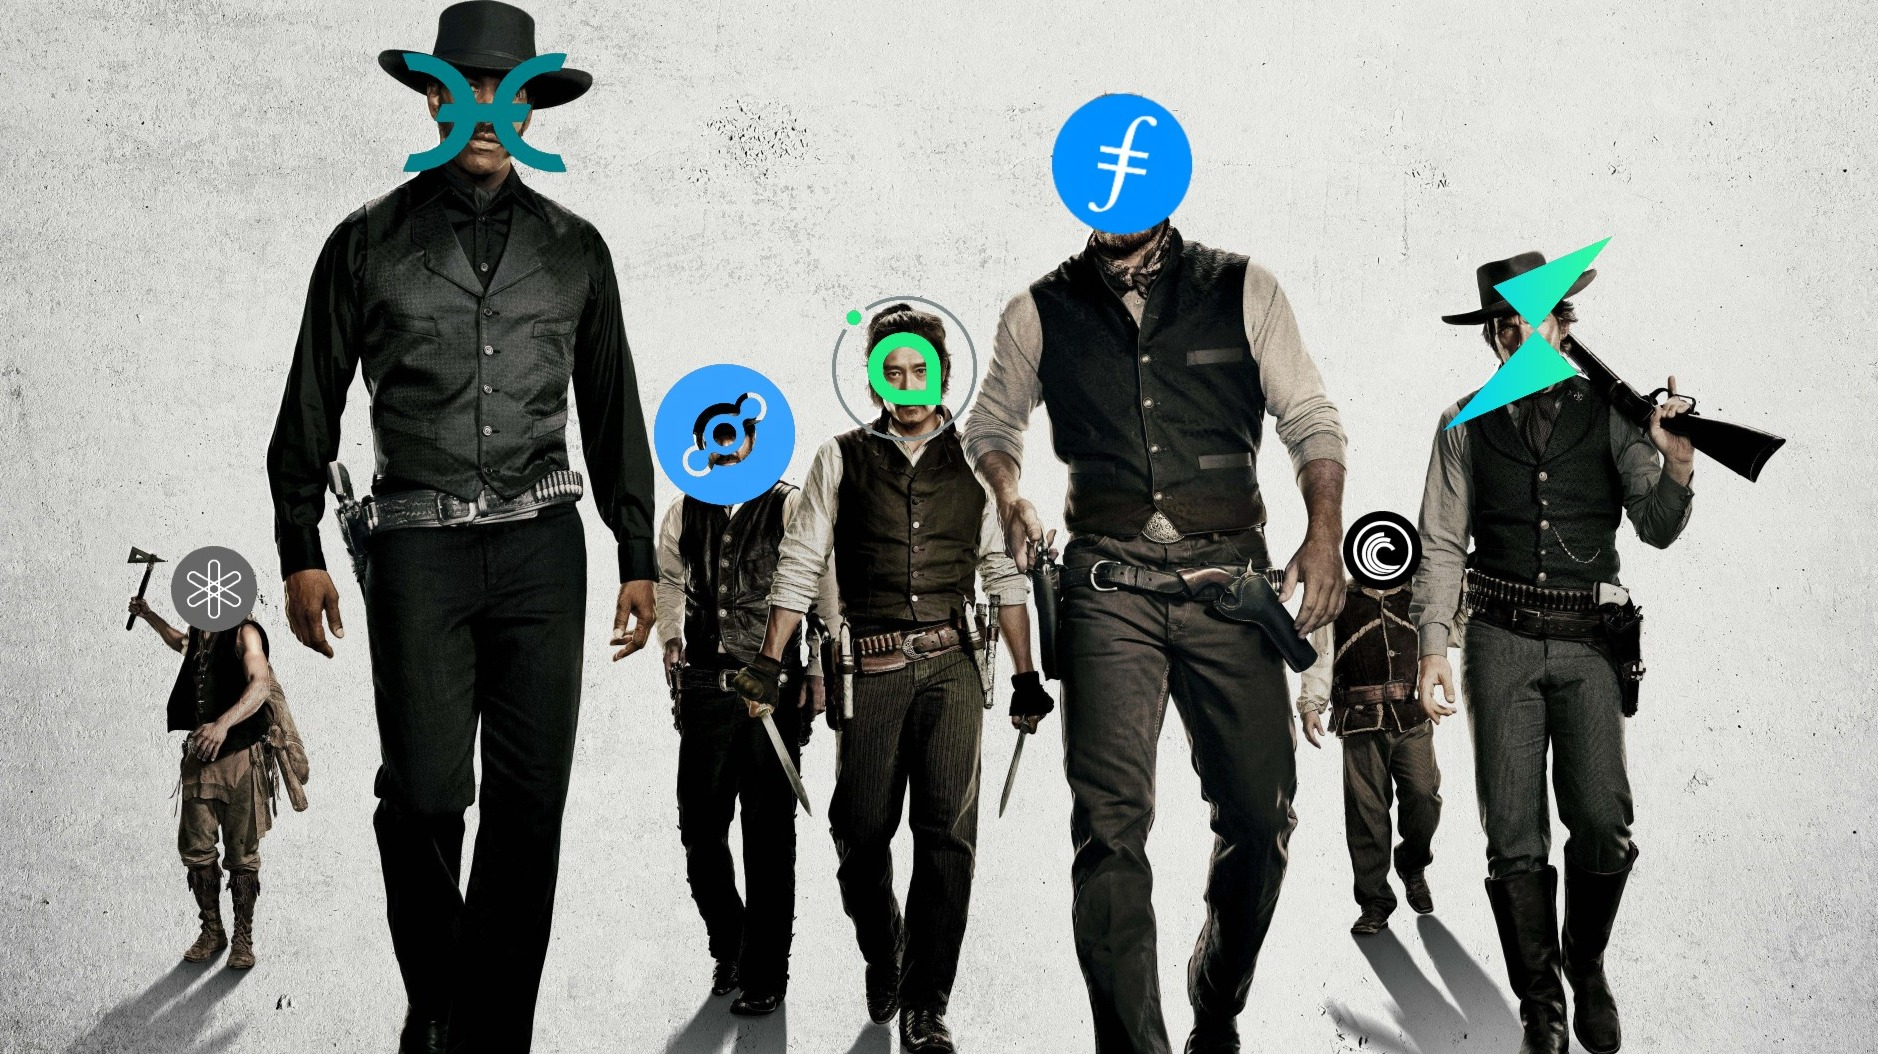 The Magnificent Seven: HOT, FIL, BTT, SC, HNT, RUNE, DENT – Biggest Gainers from March 26th to April 2nd